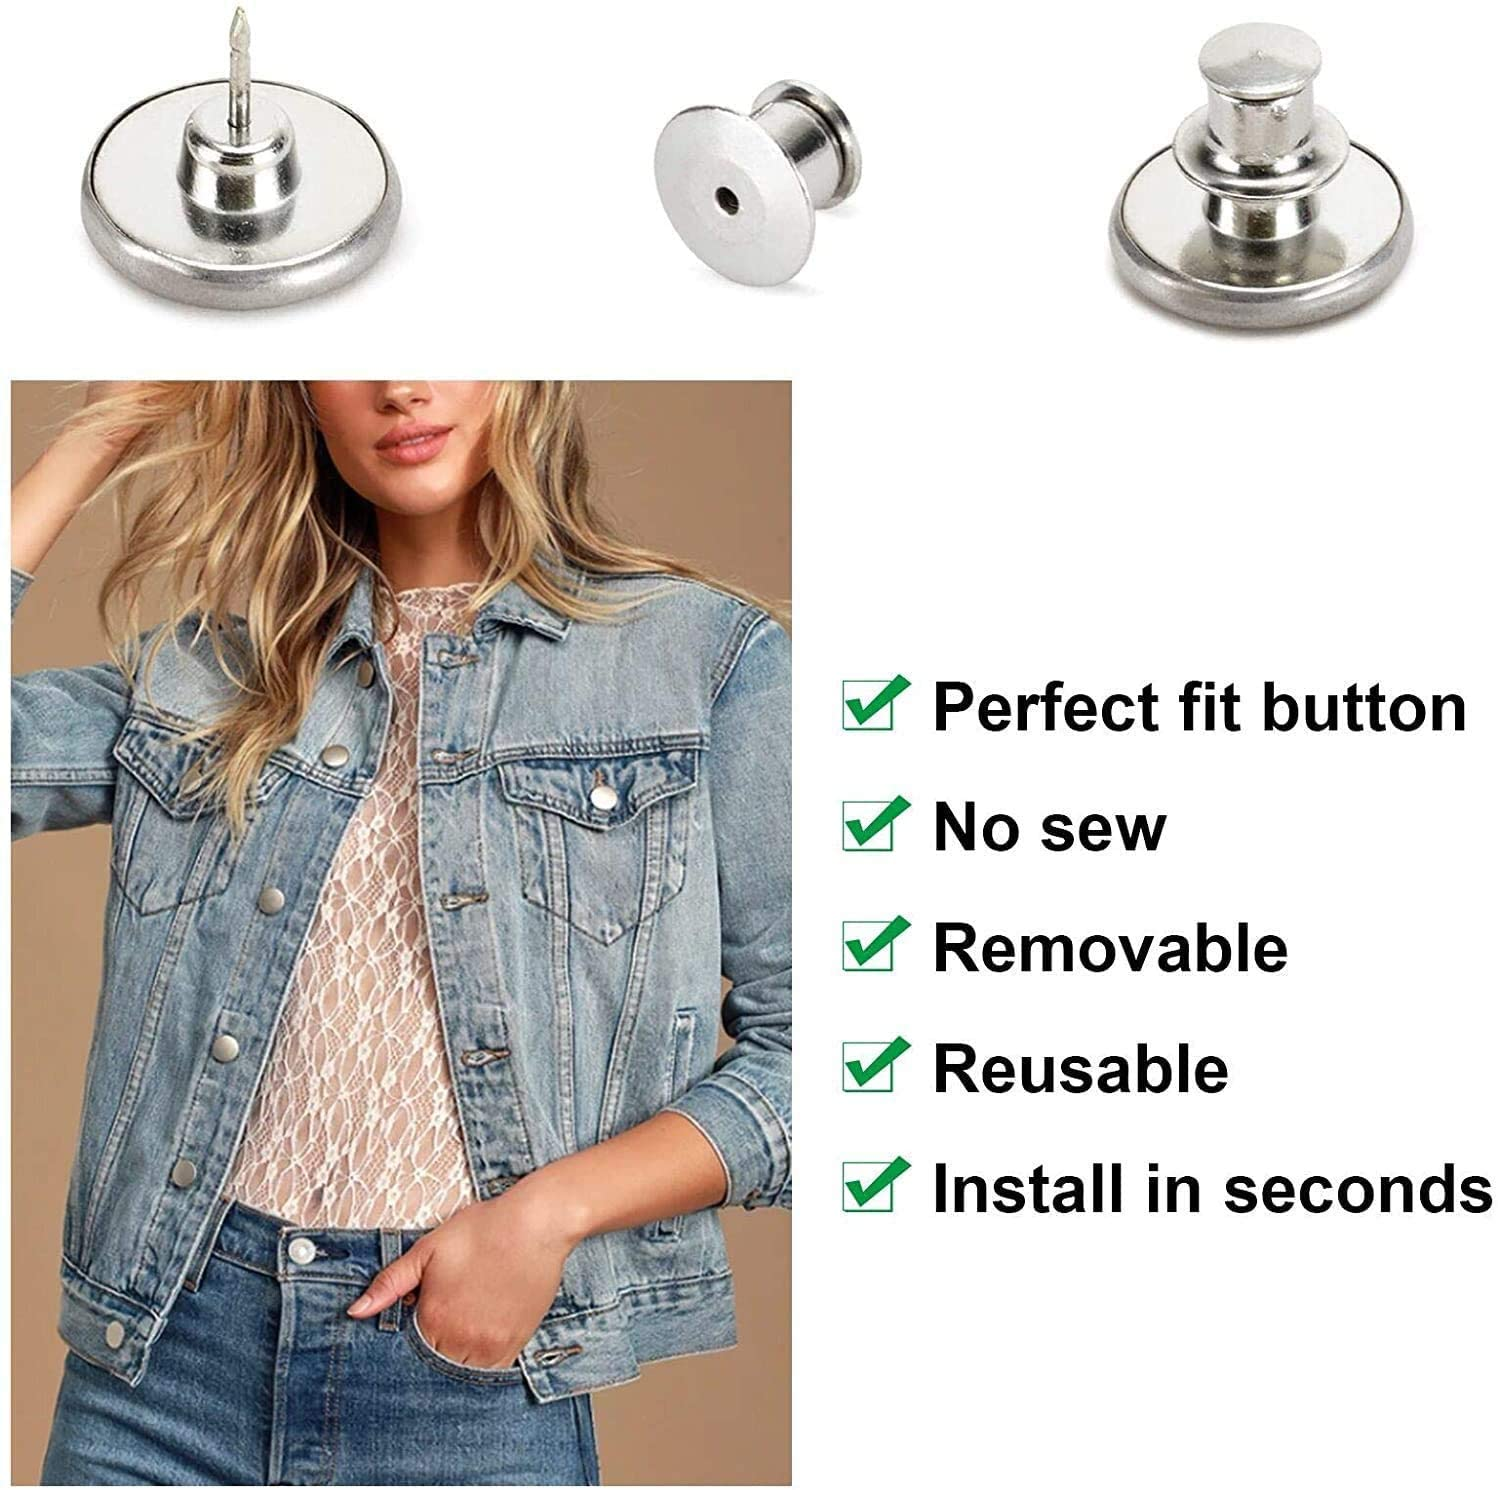 [Upgraded] Adjustable Jeans Button Pins Instant